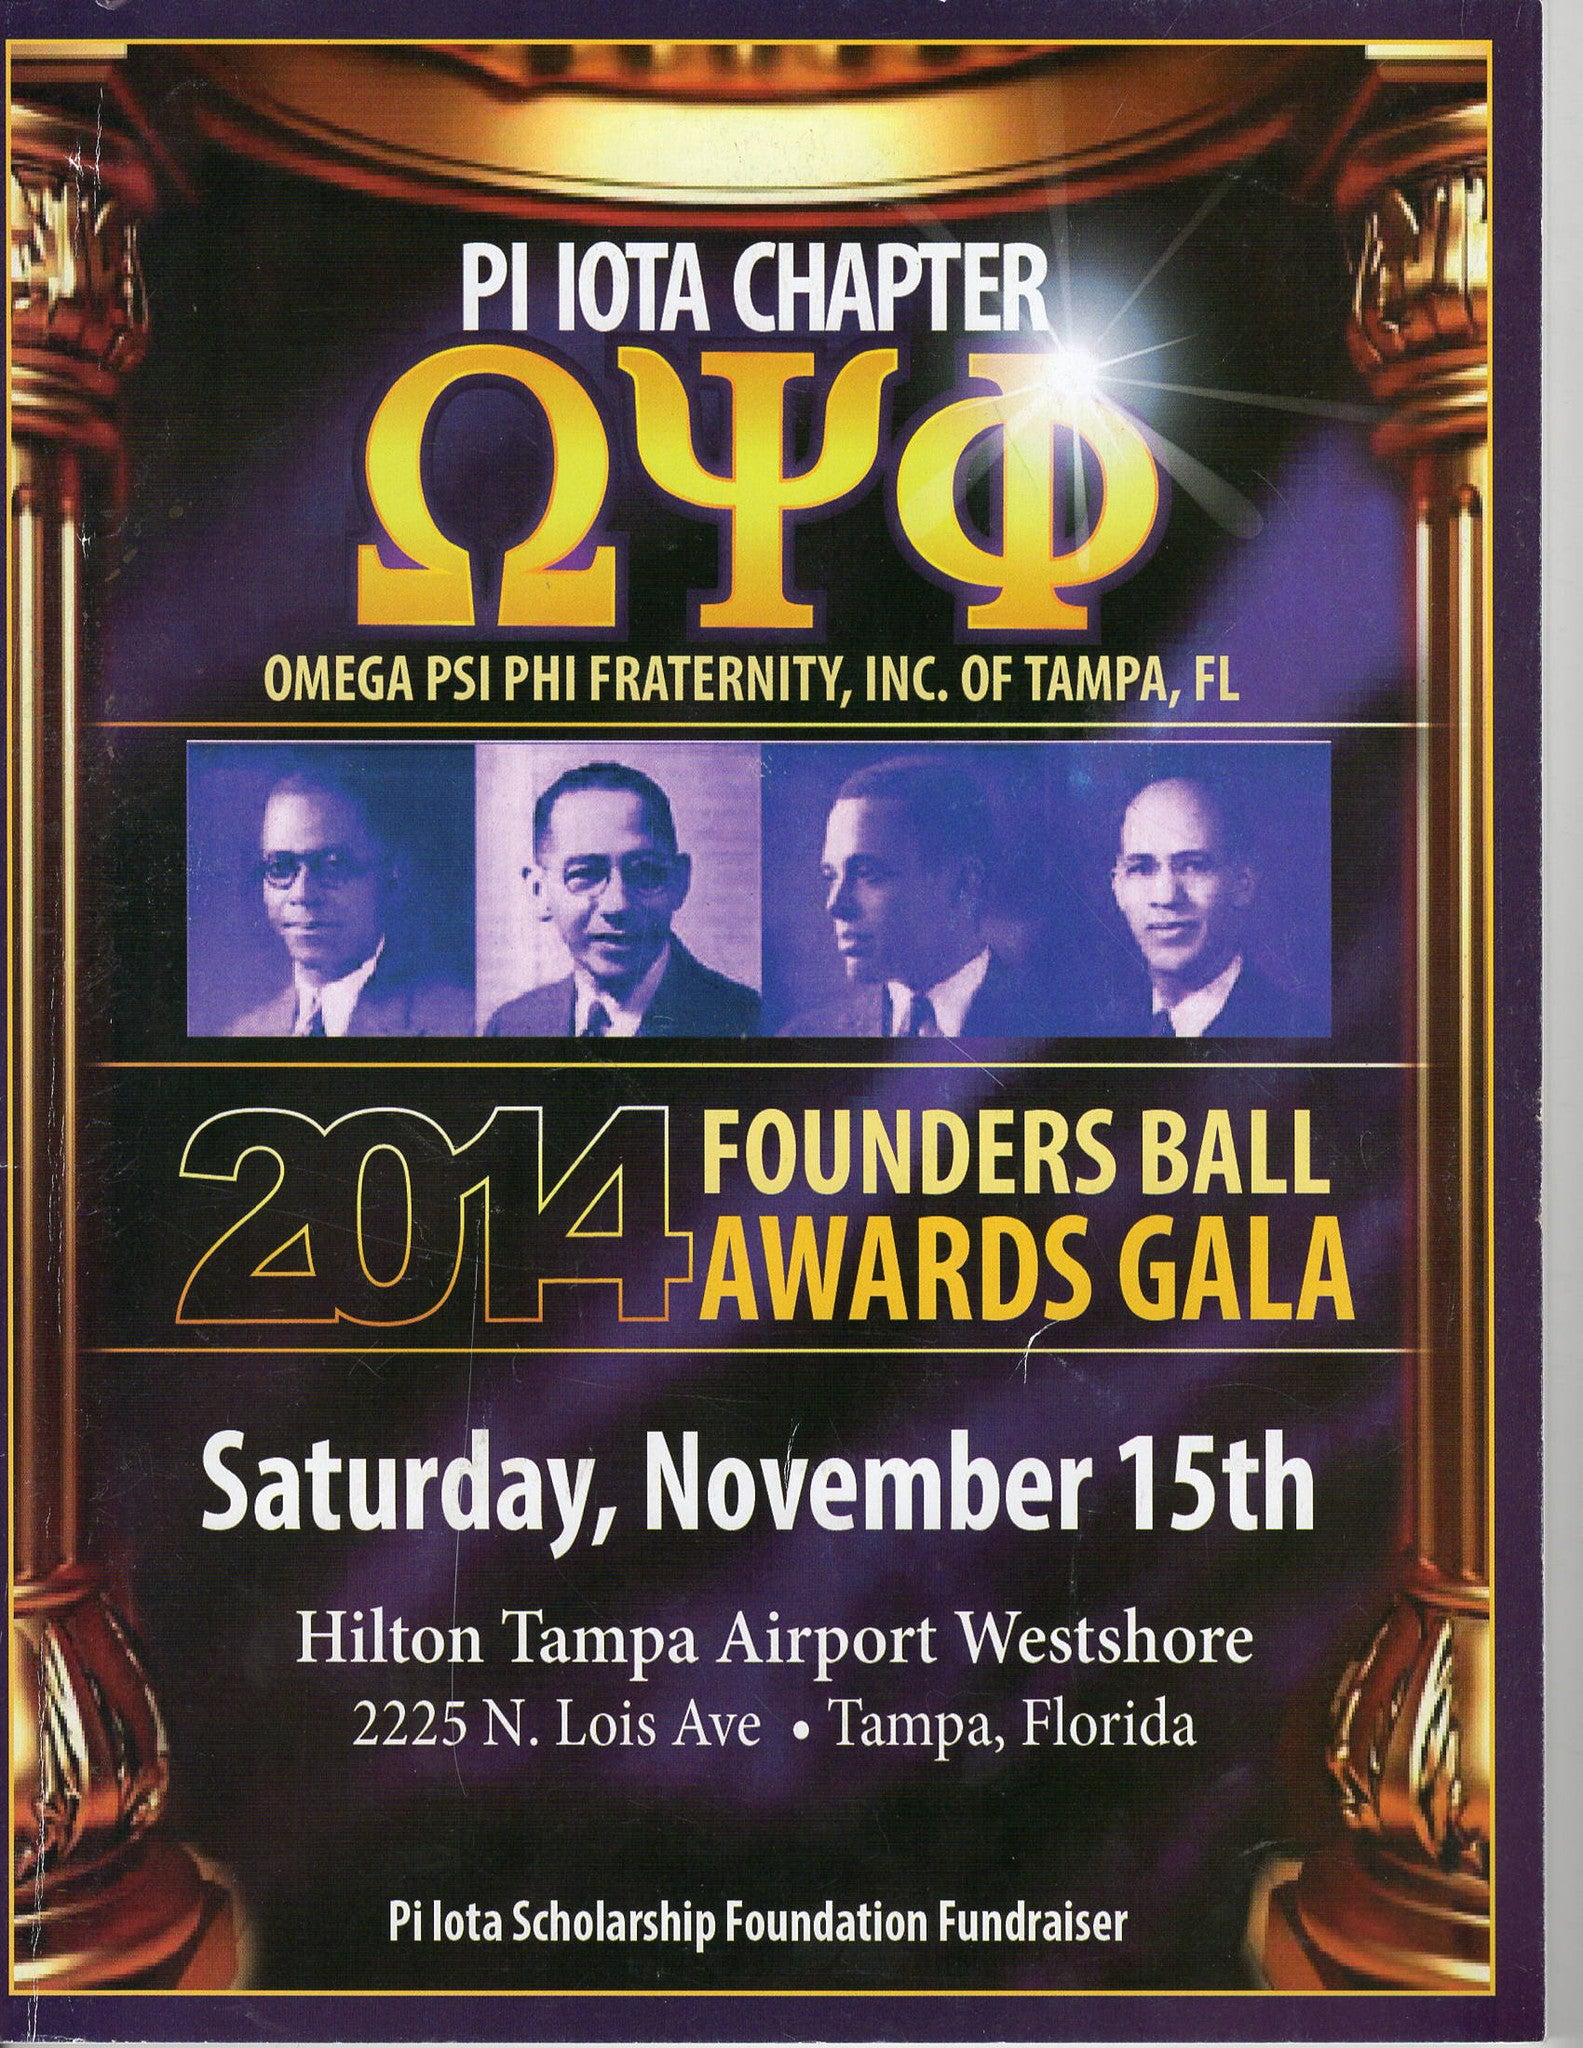 11 15 2014 PI IOTA Founders Day Ball